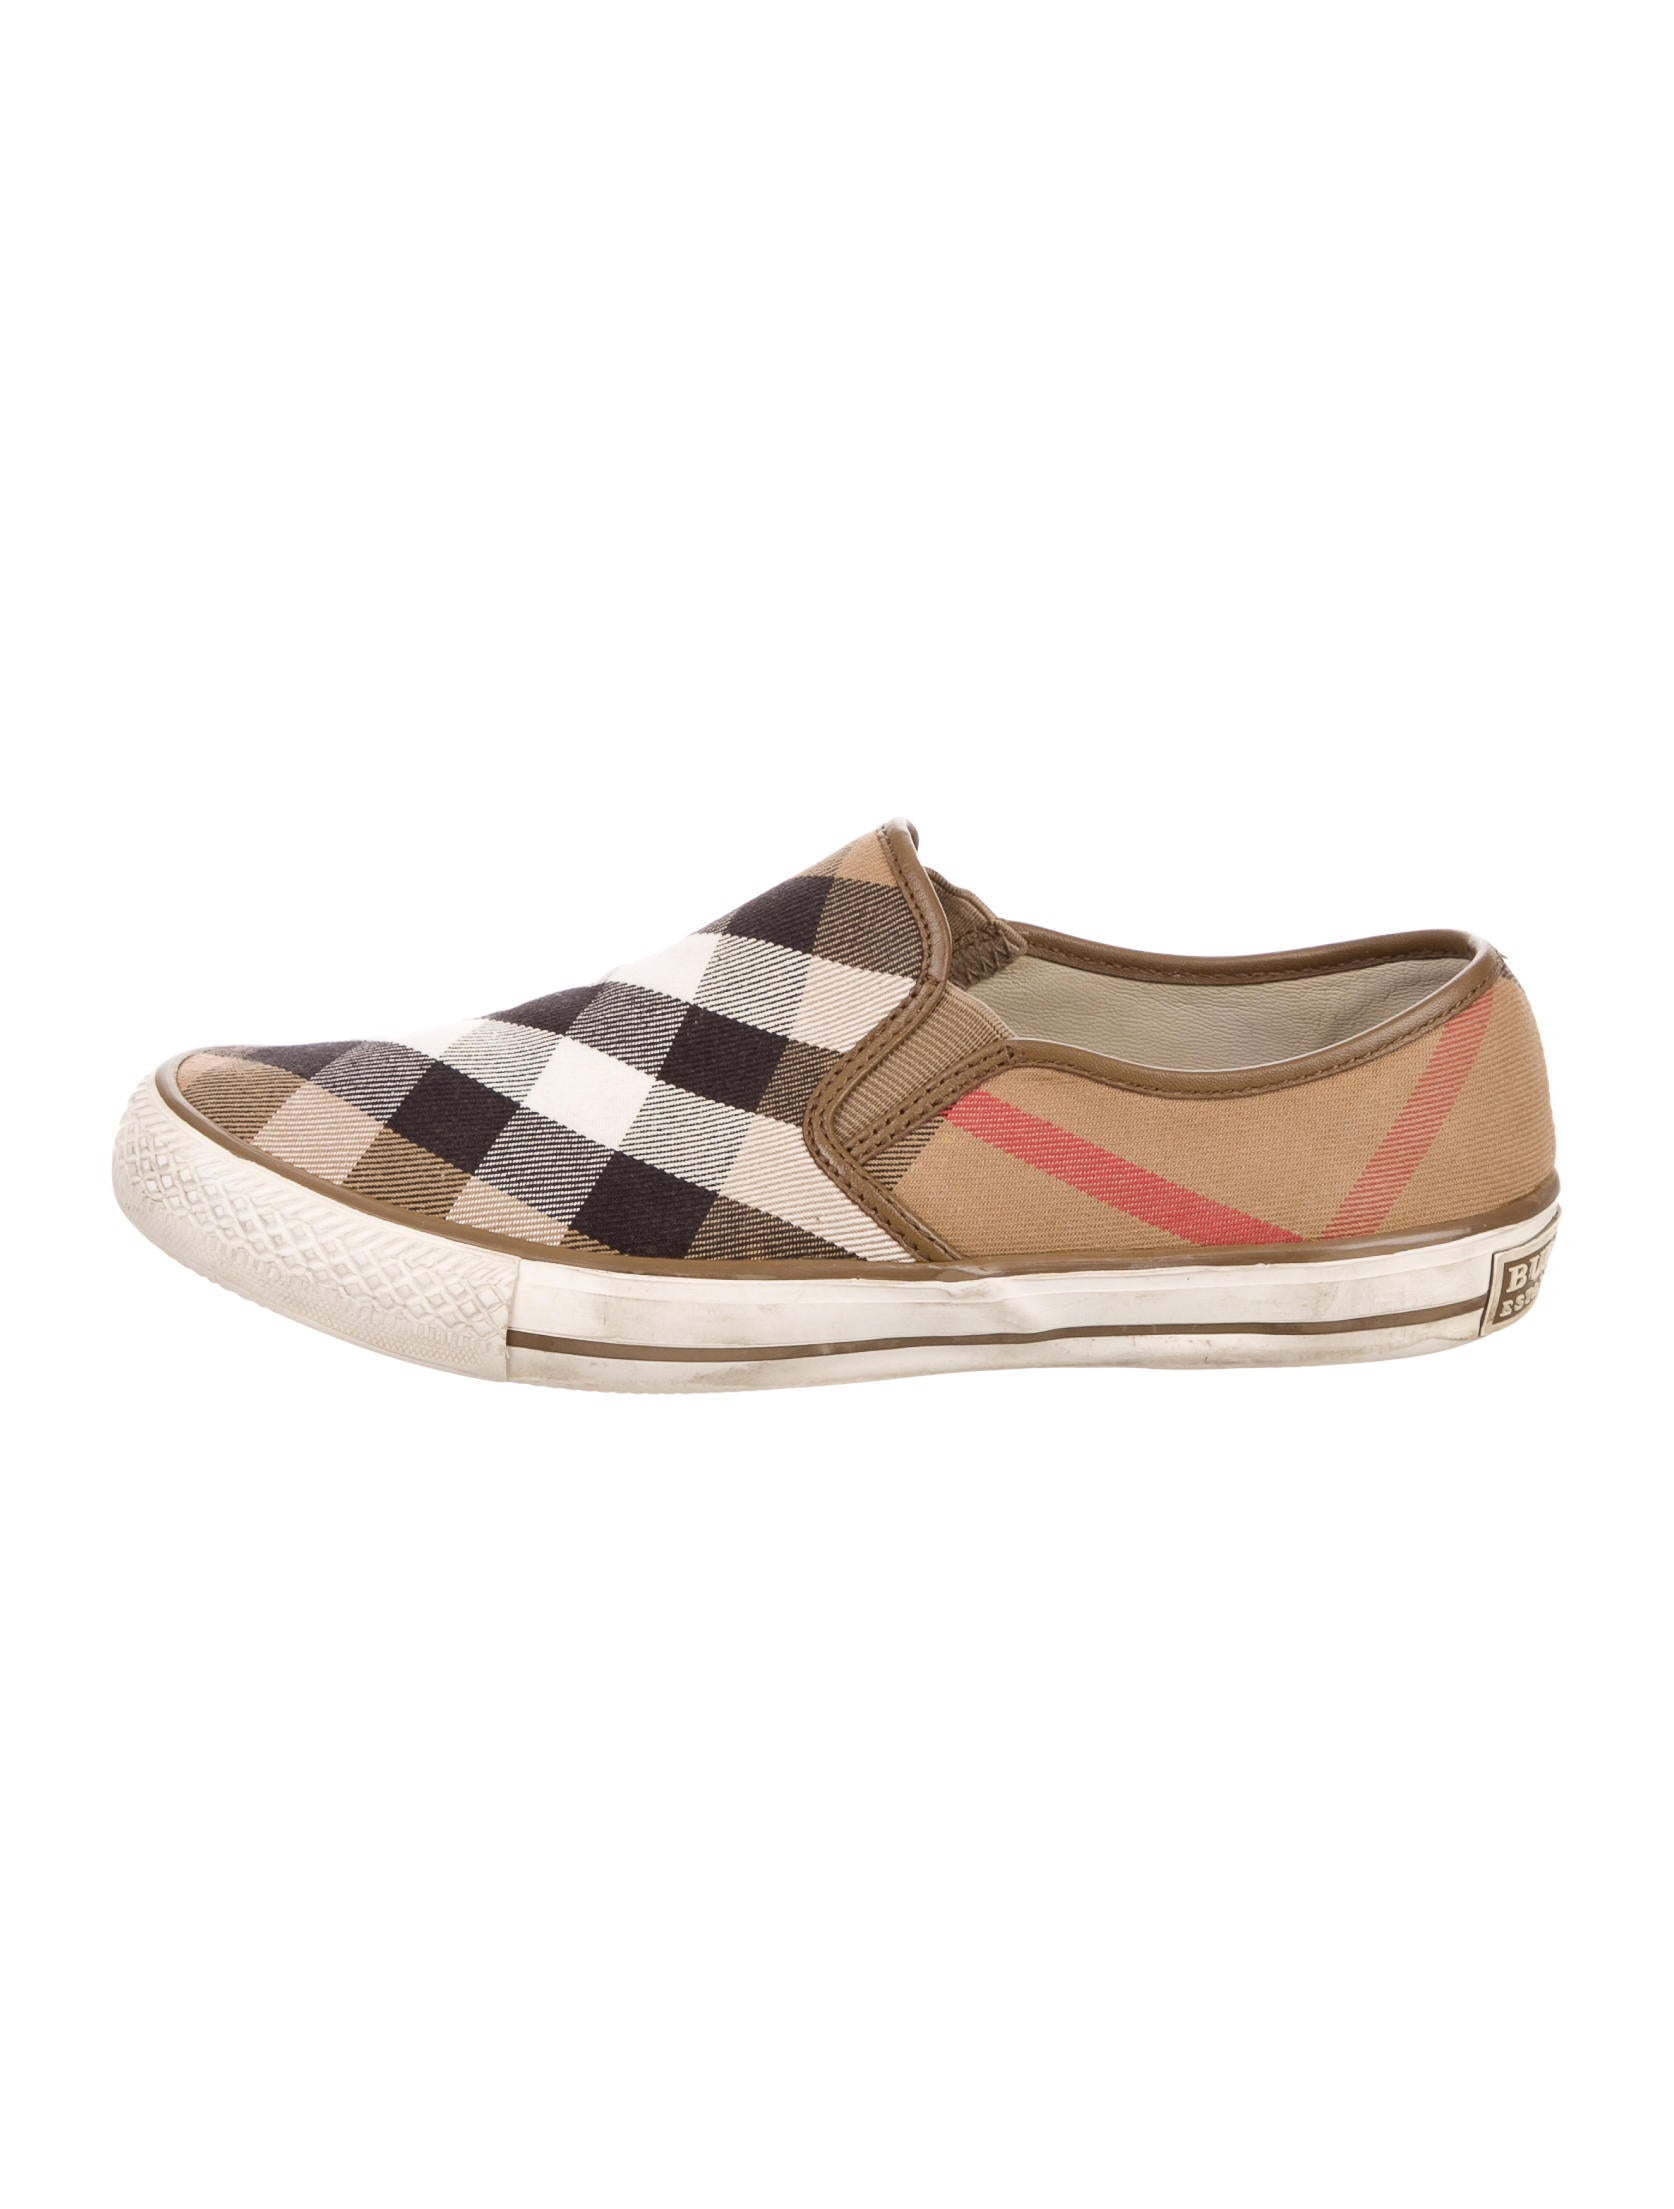 burberry check slip on sneakers shoes bur70280 the